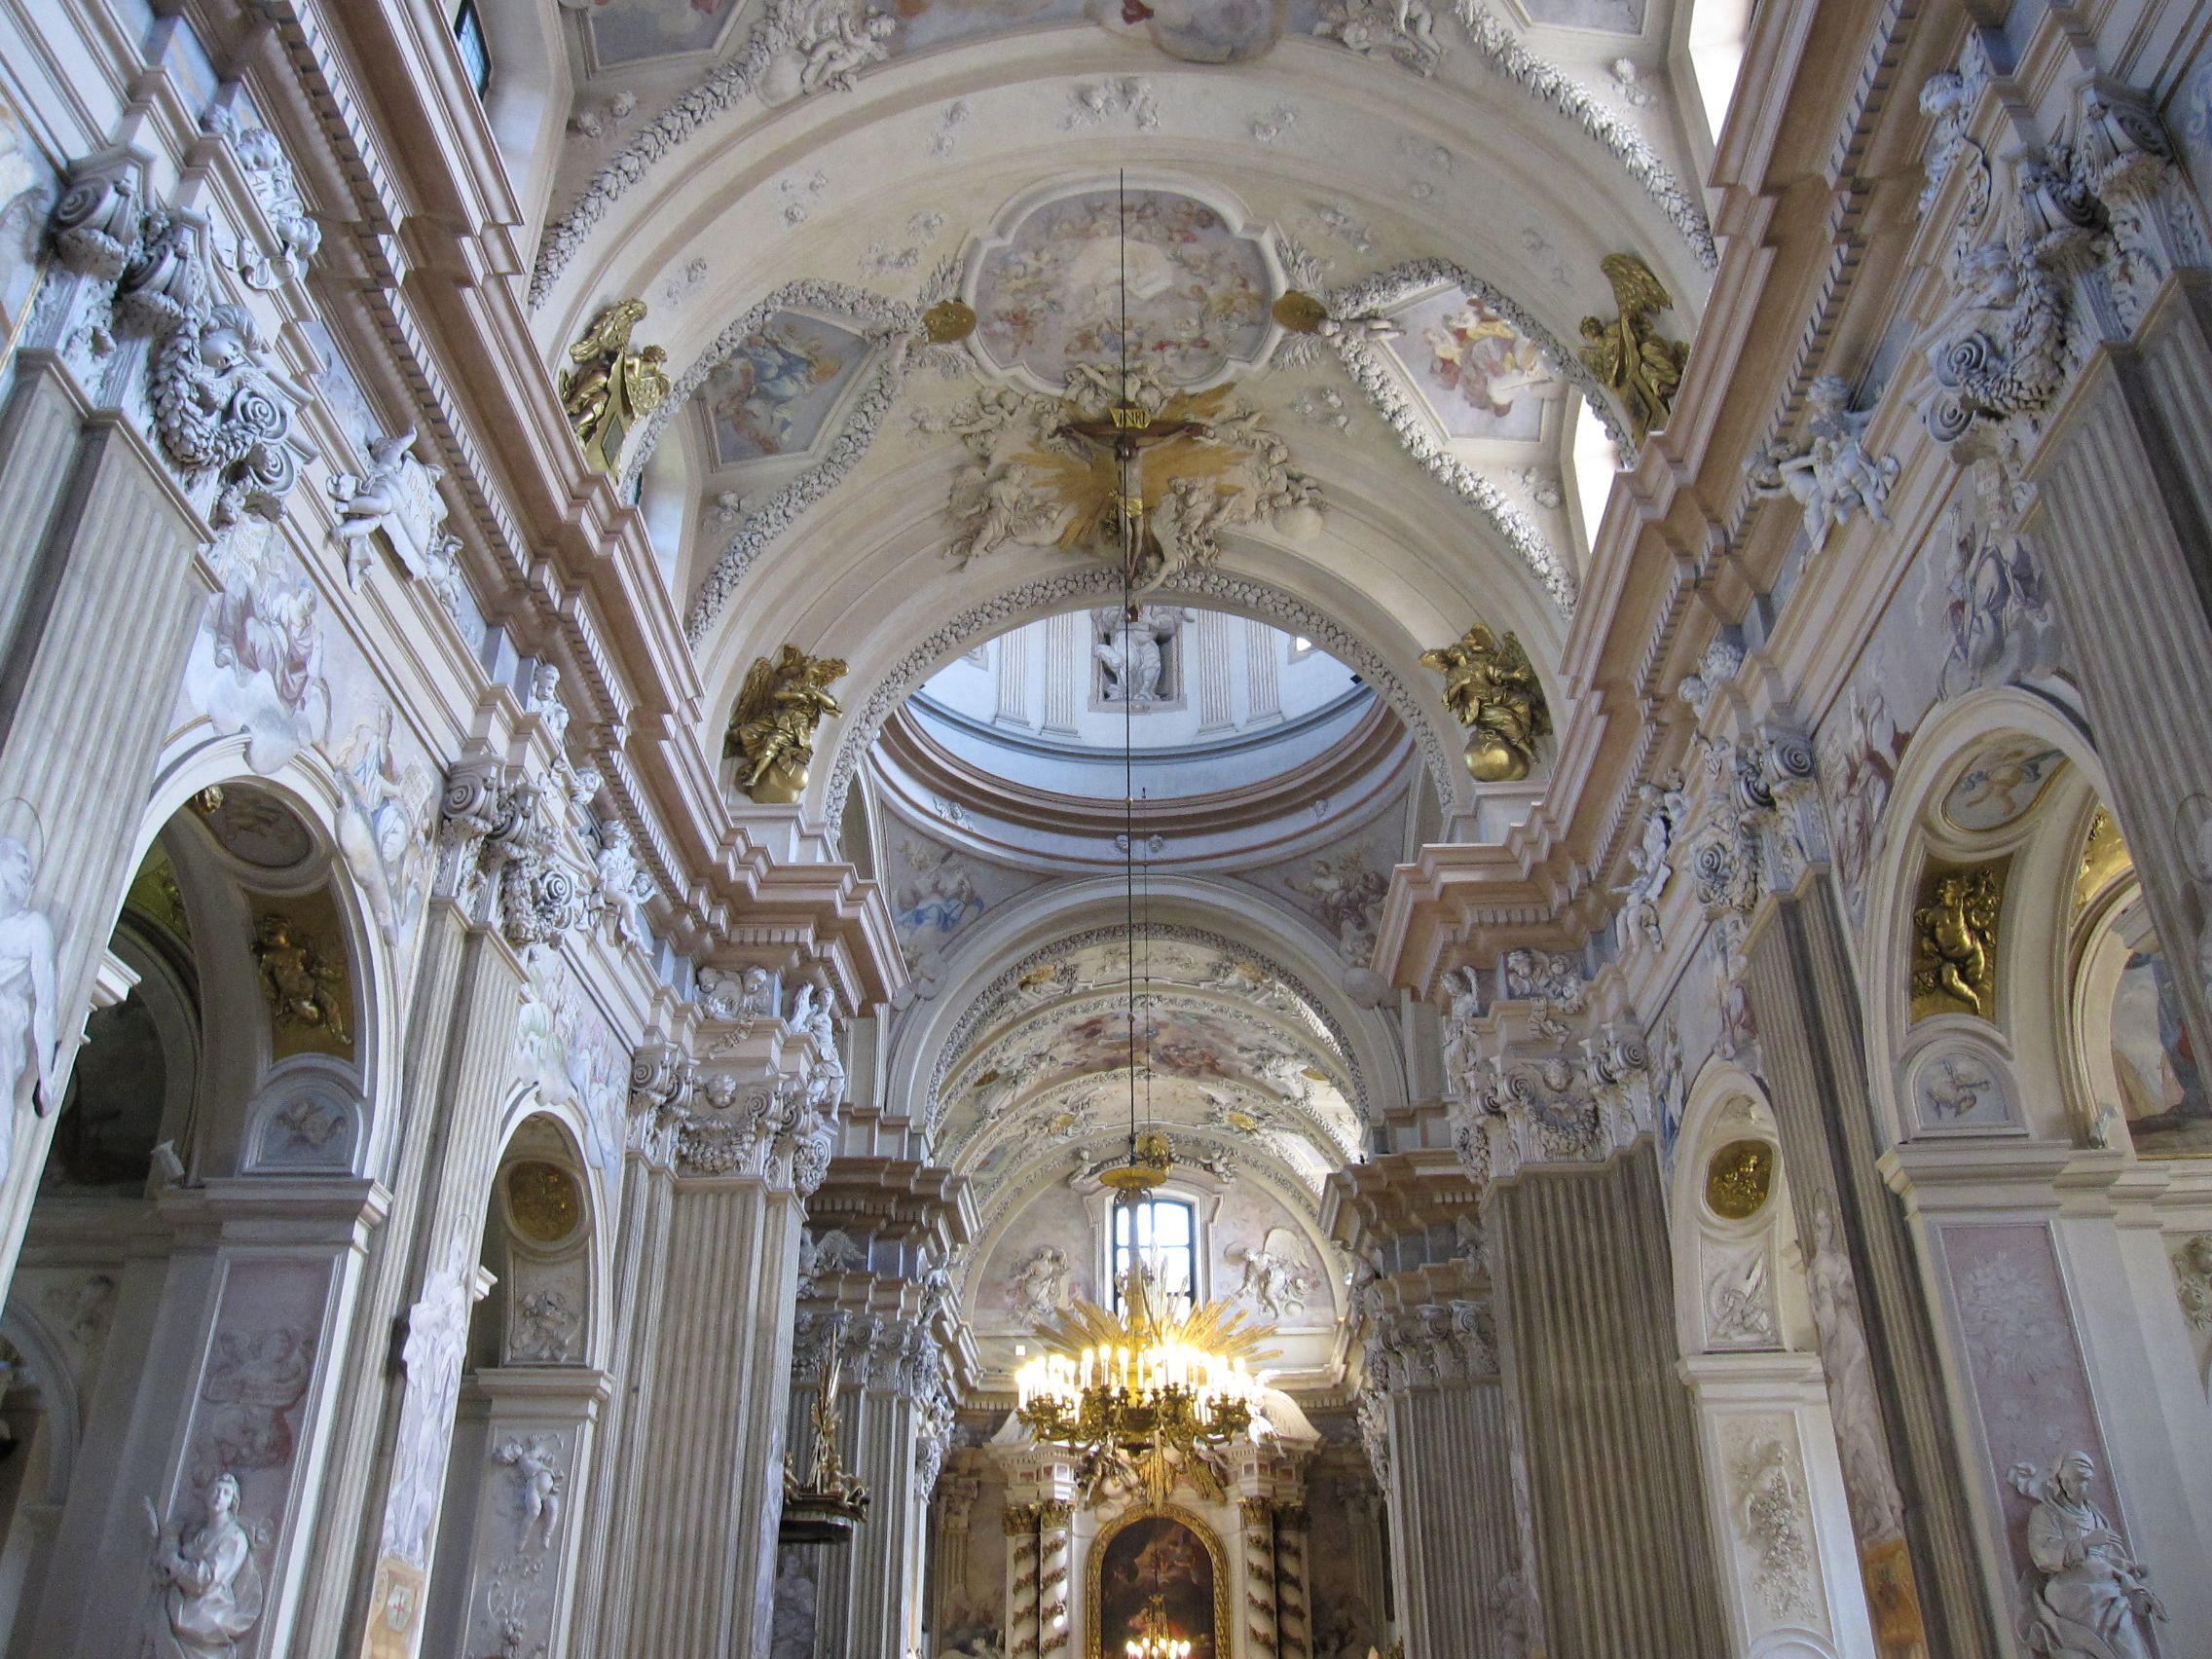 68 best baroque architecture images on pinterest | baroque